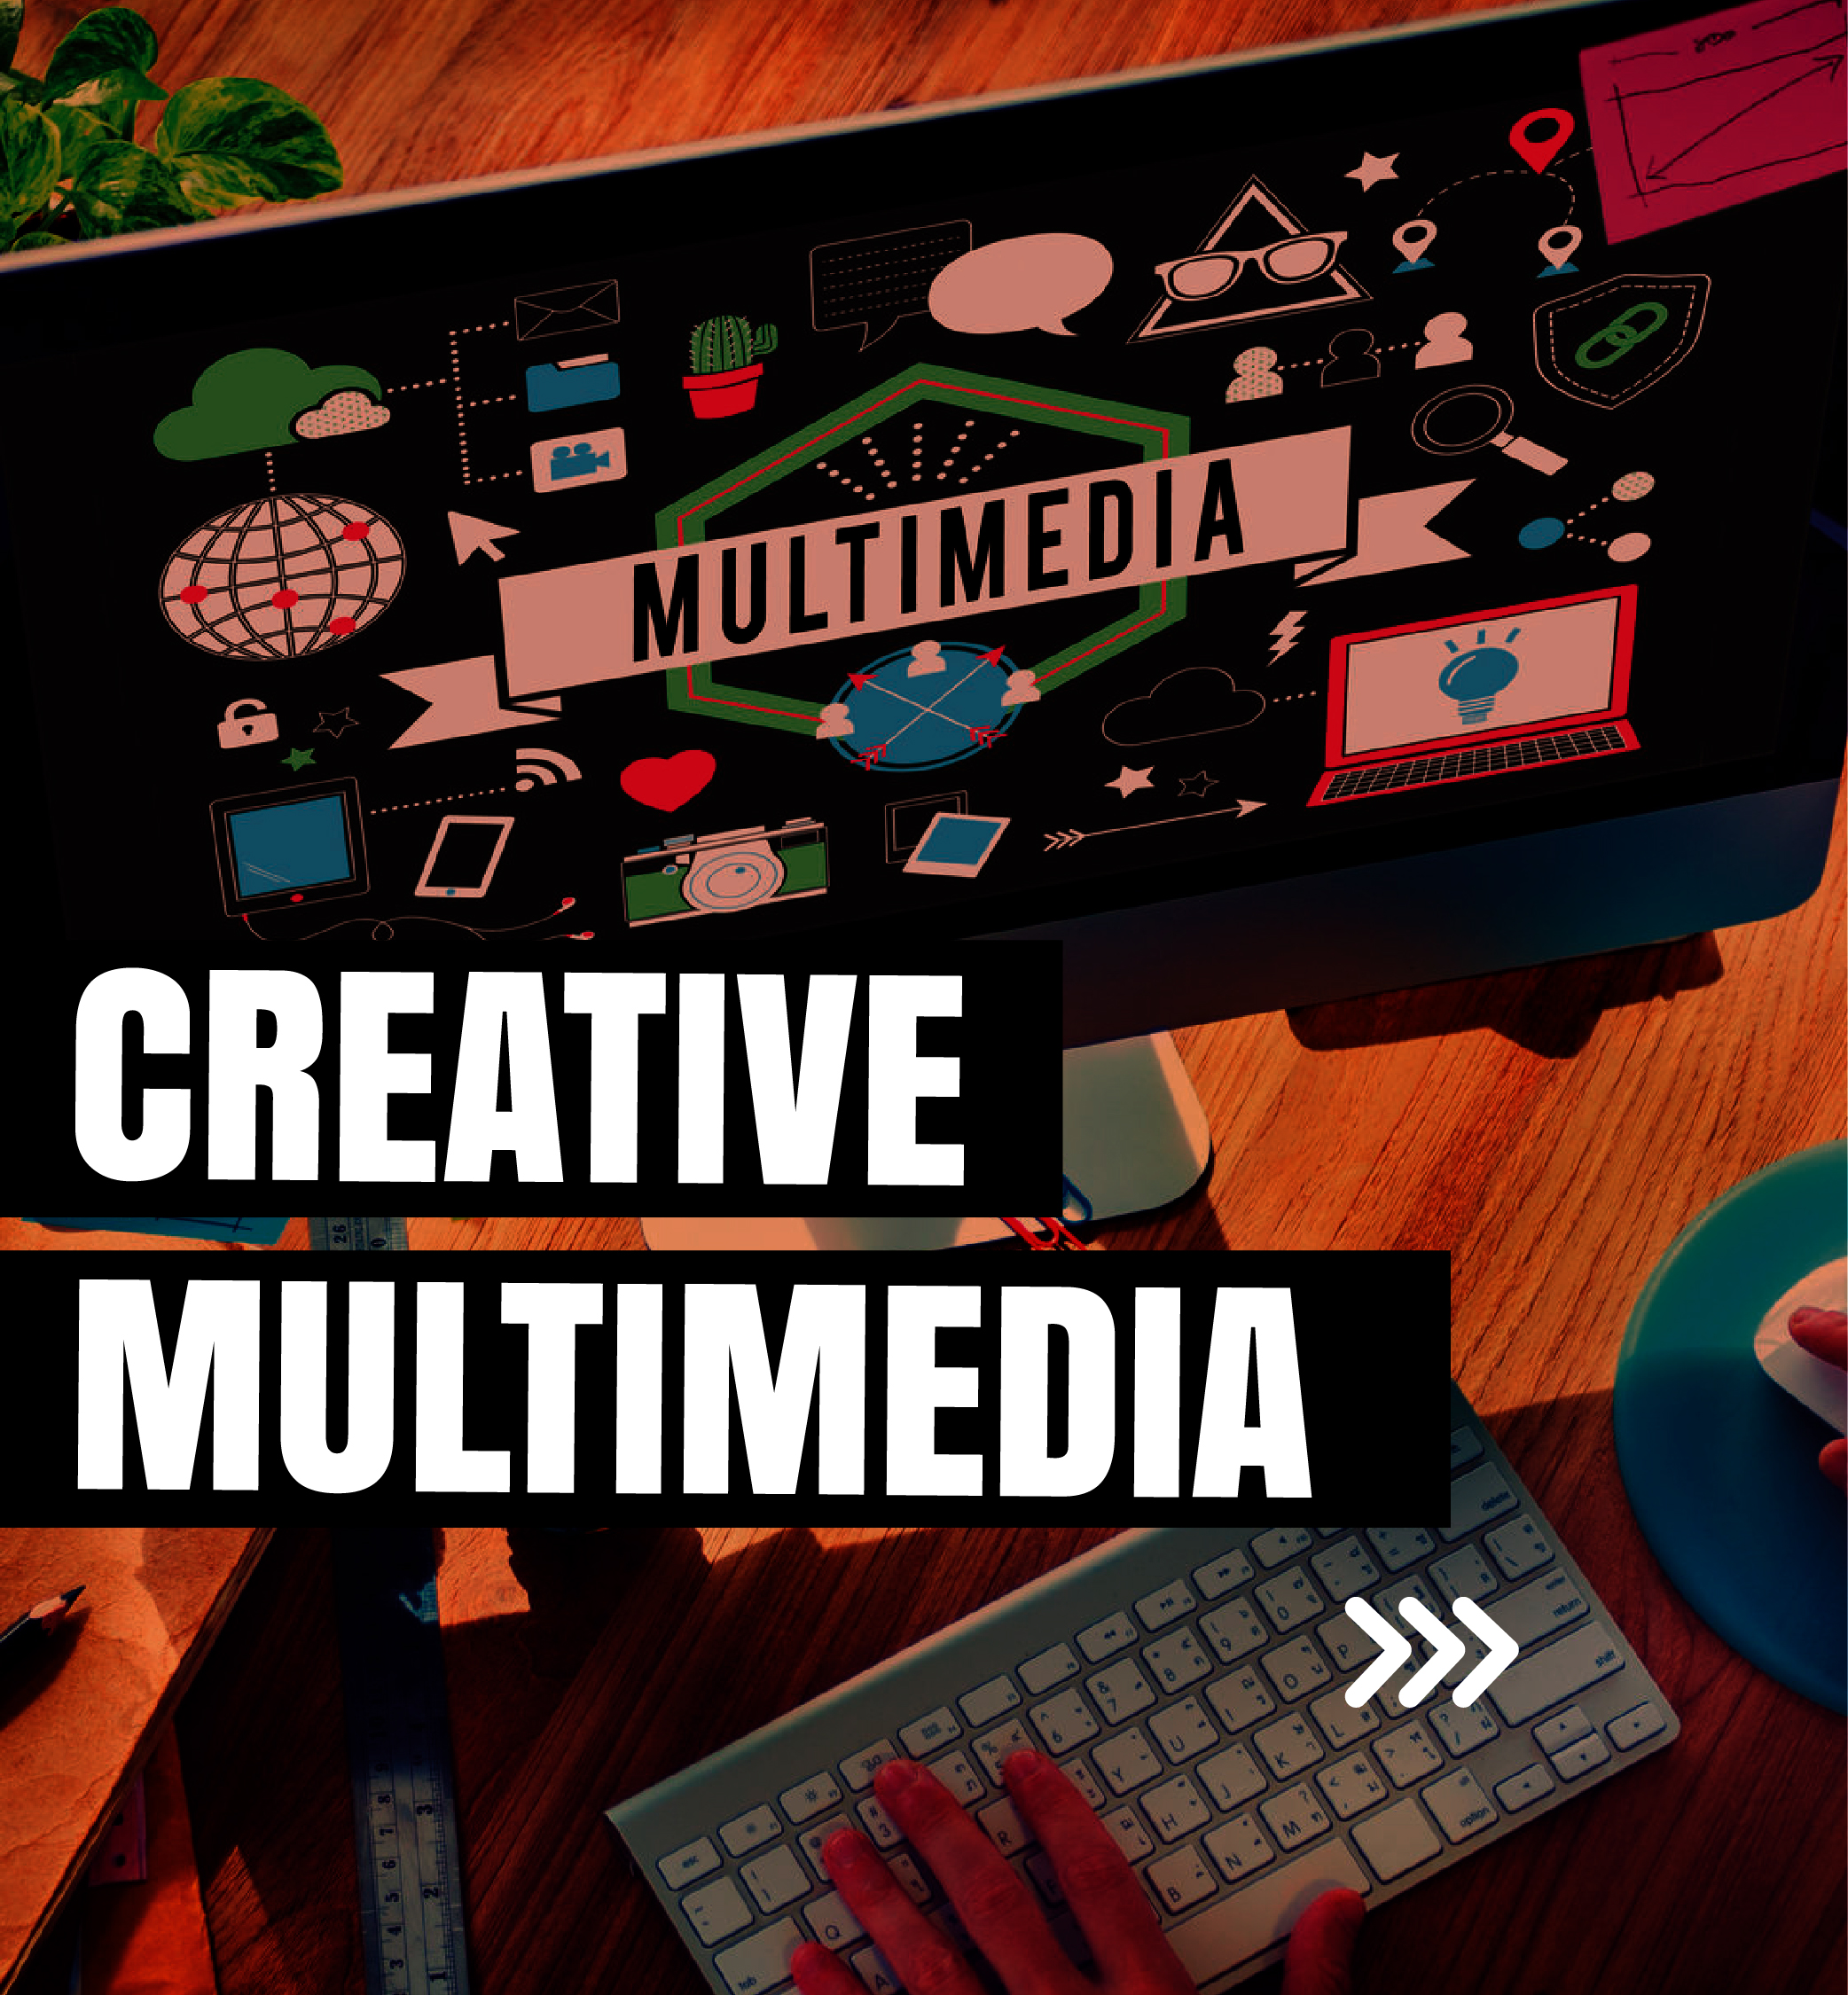 Creative Multimedia-01